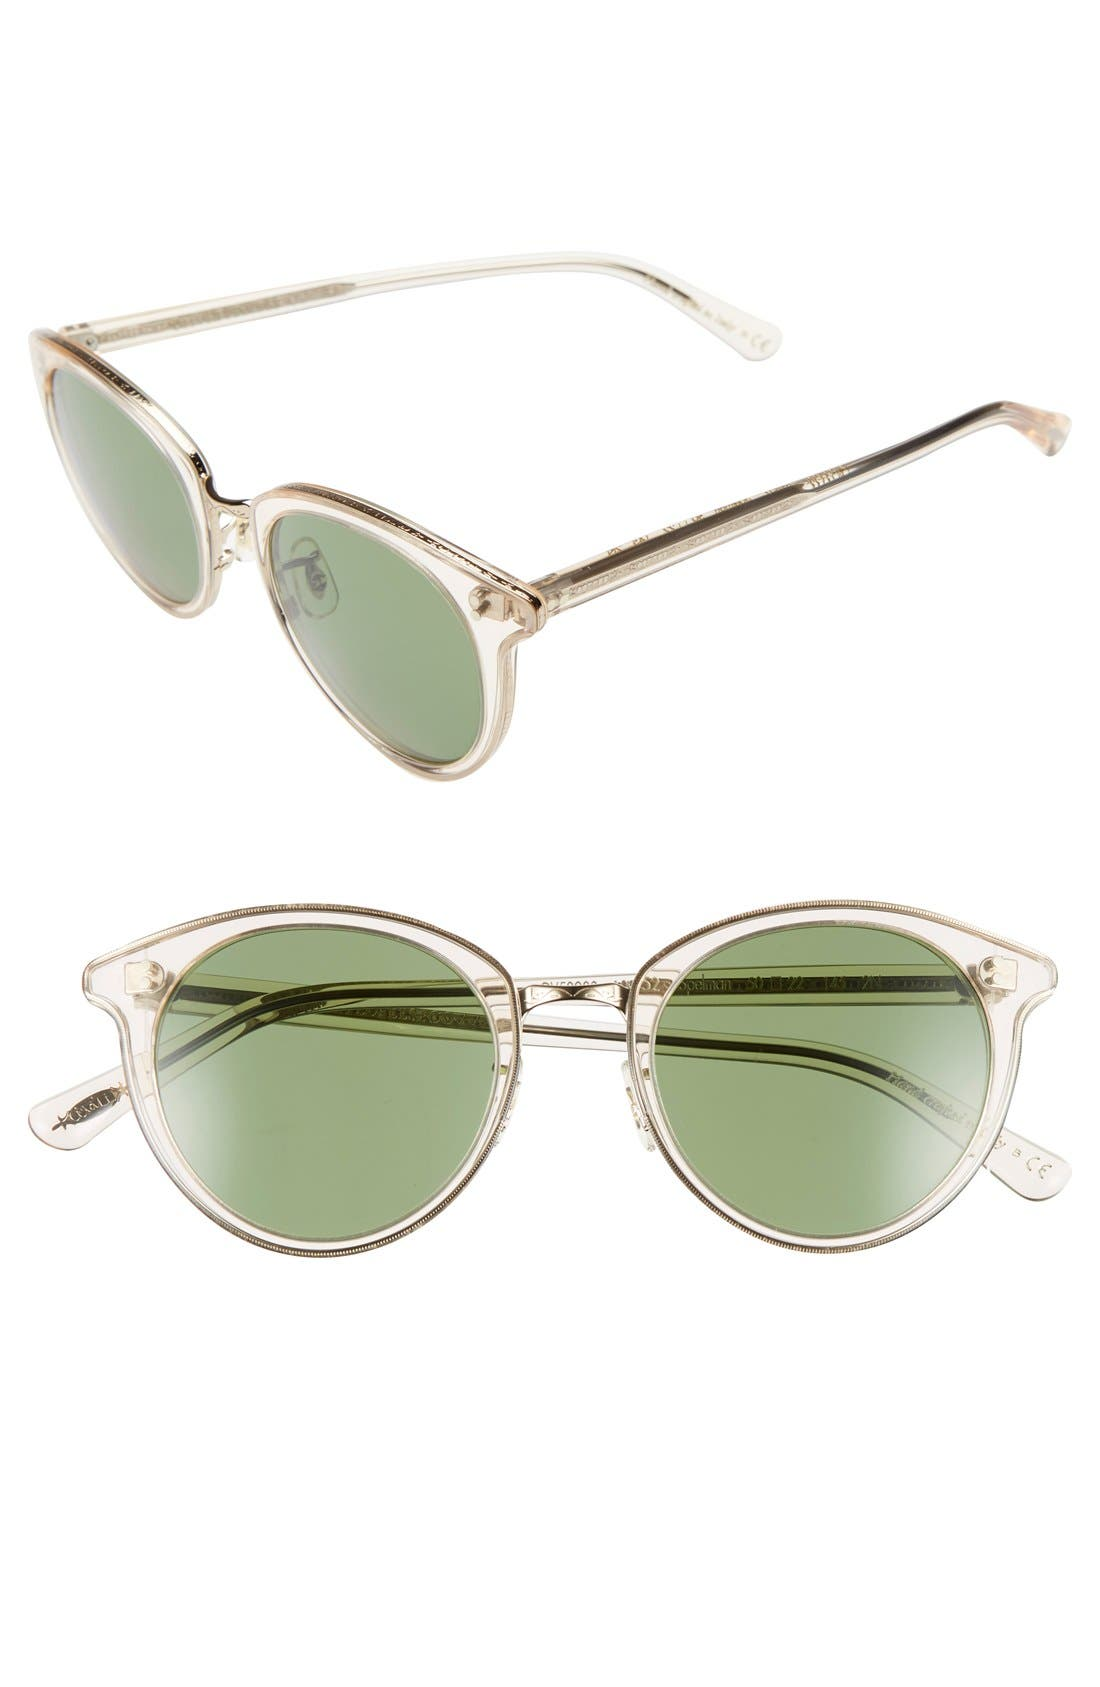 Oliver Peoples 'Spelman' 50mm Retro Sunglasses